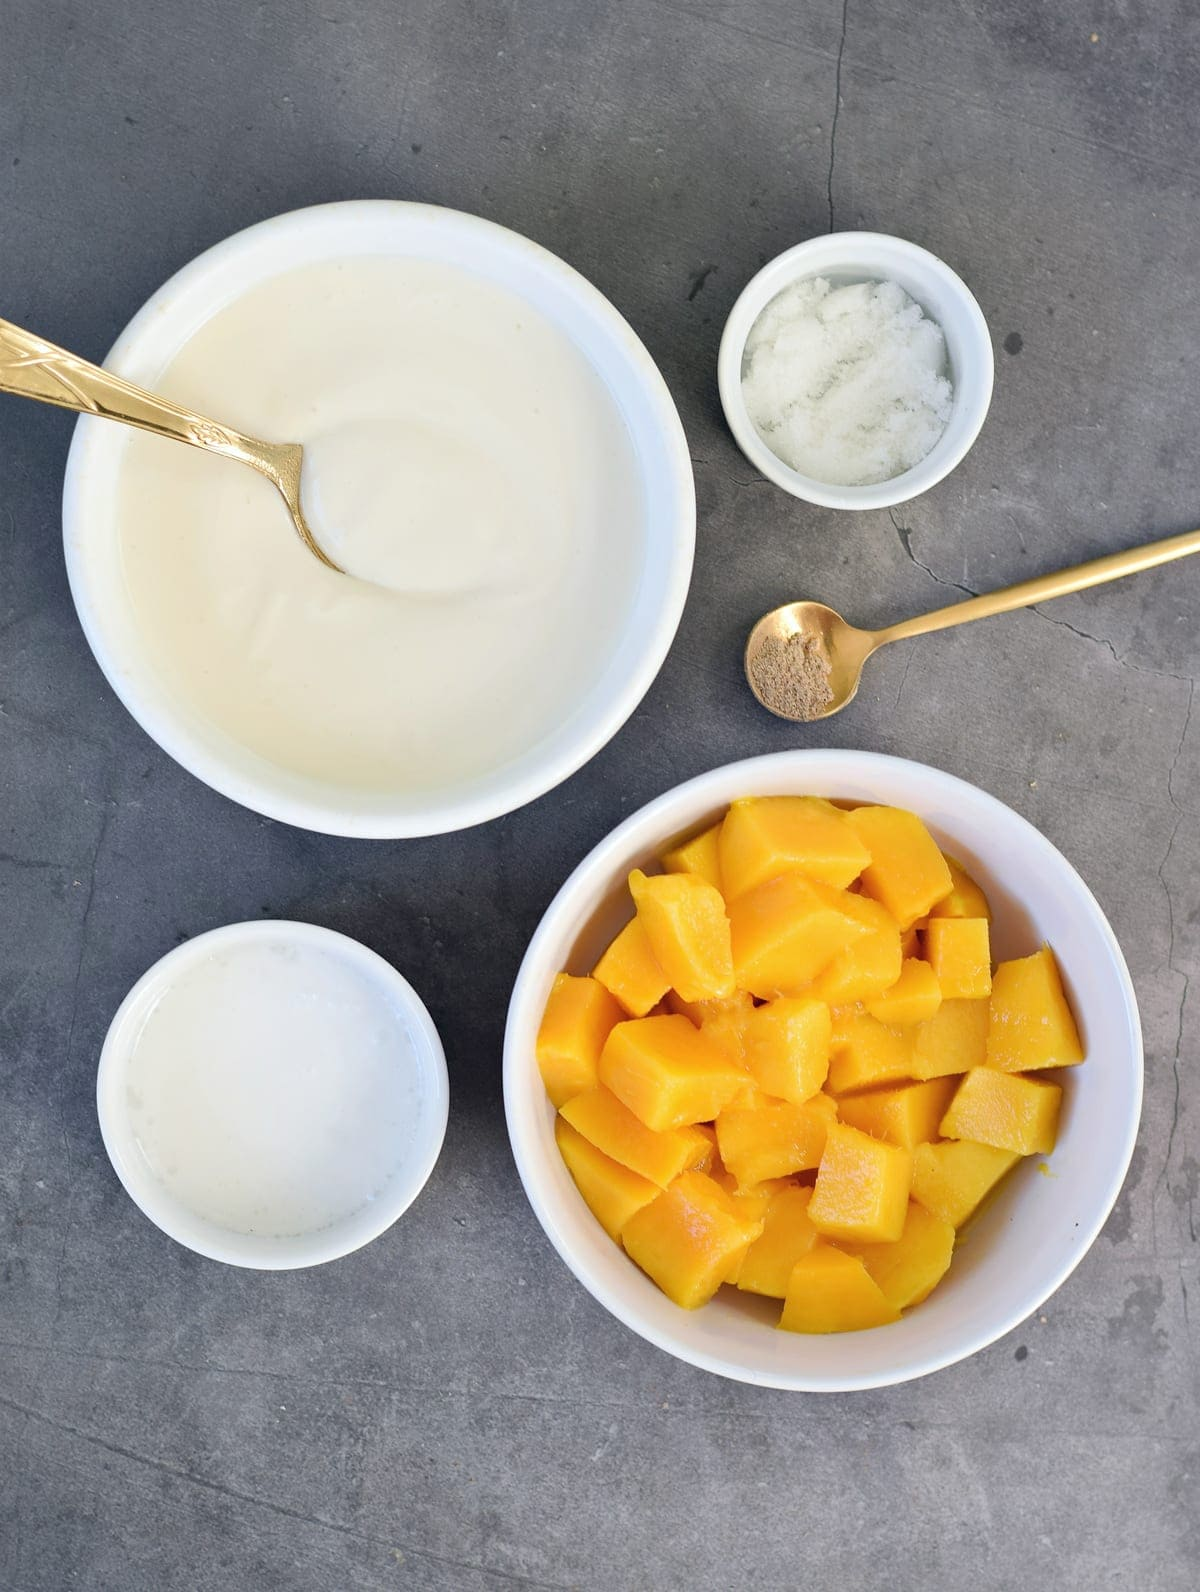 chopped mangoes, yogurt, plant-based milk, sugar, and cardamom on back backdrop